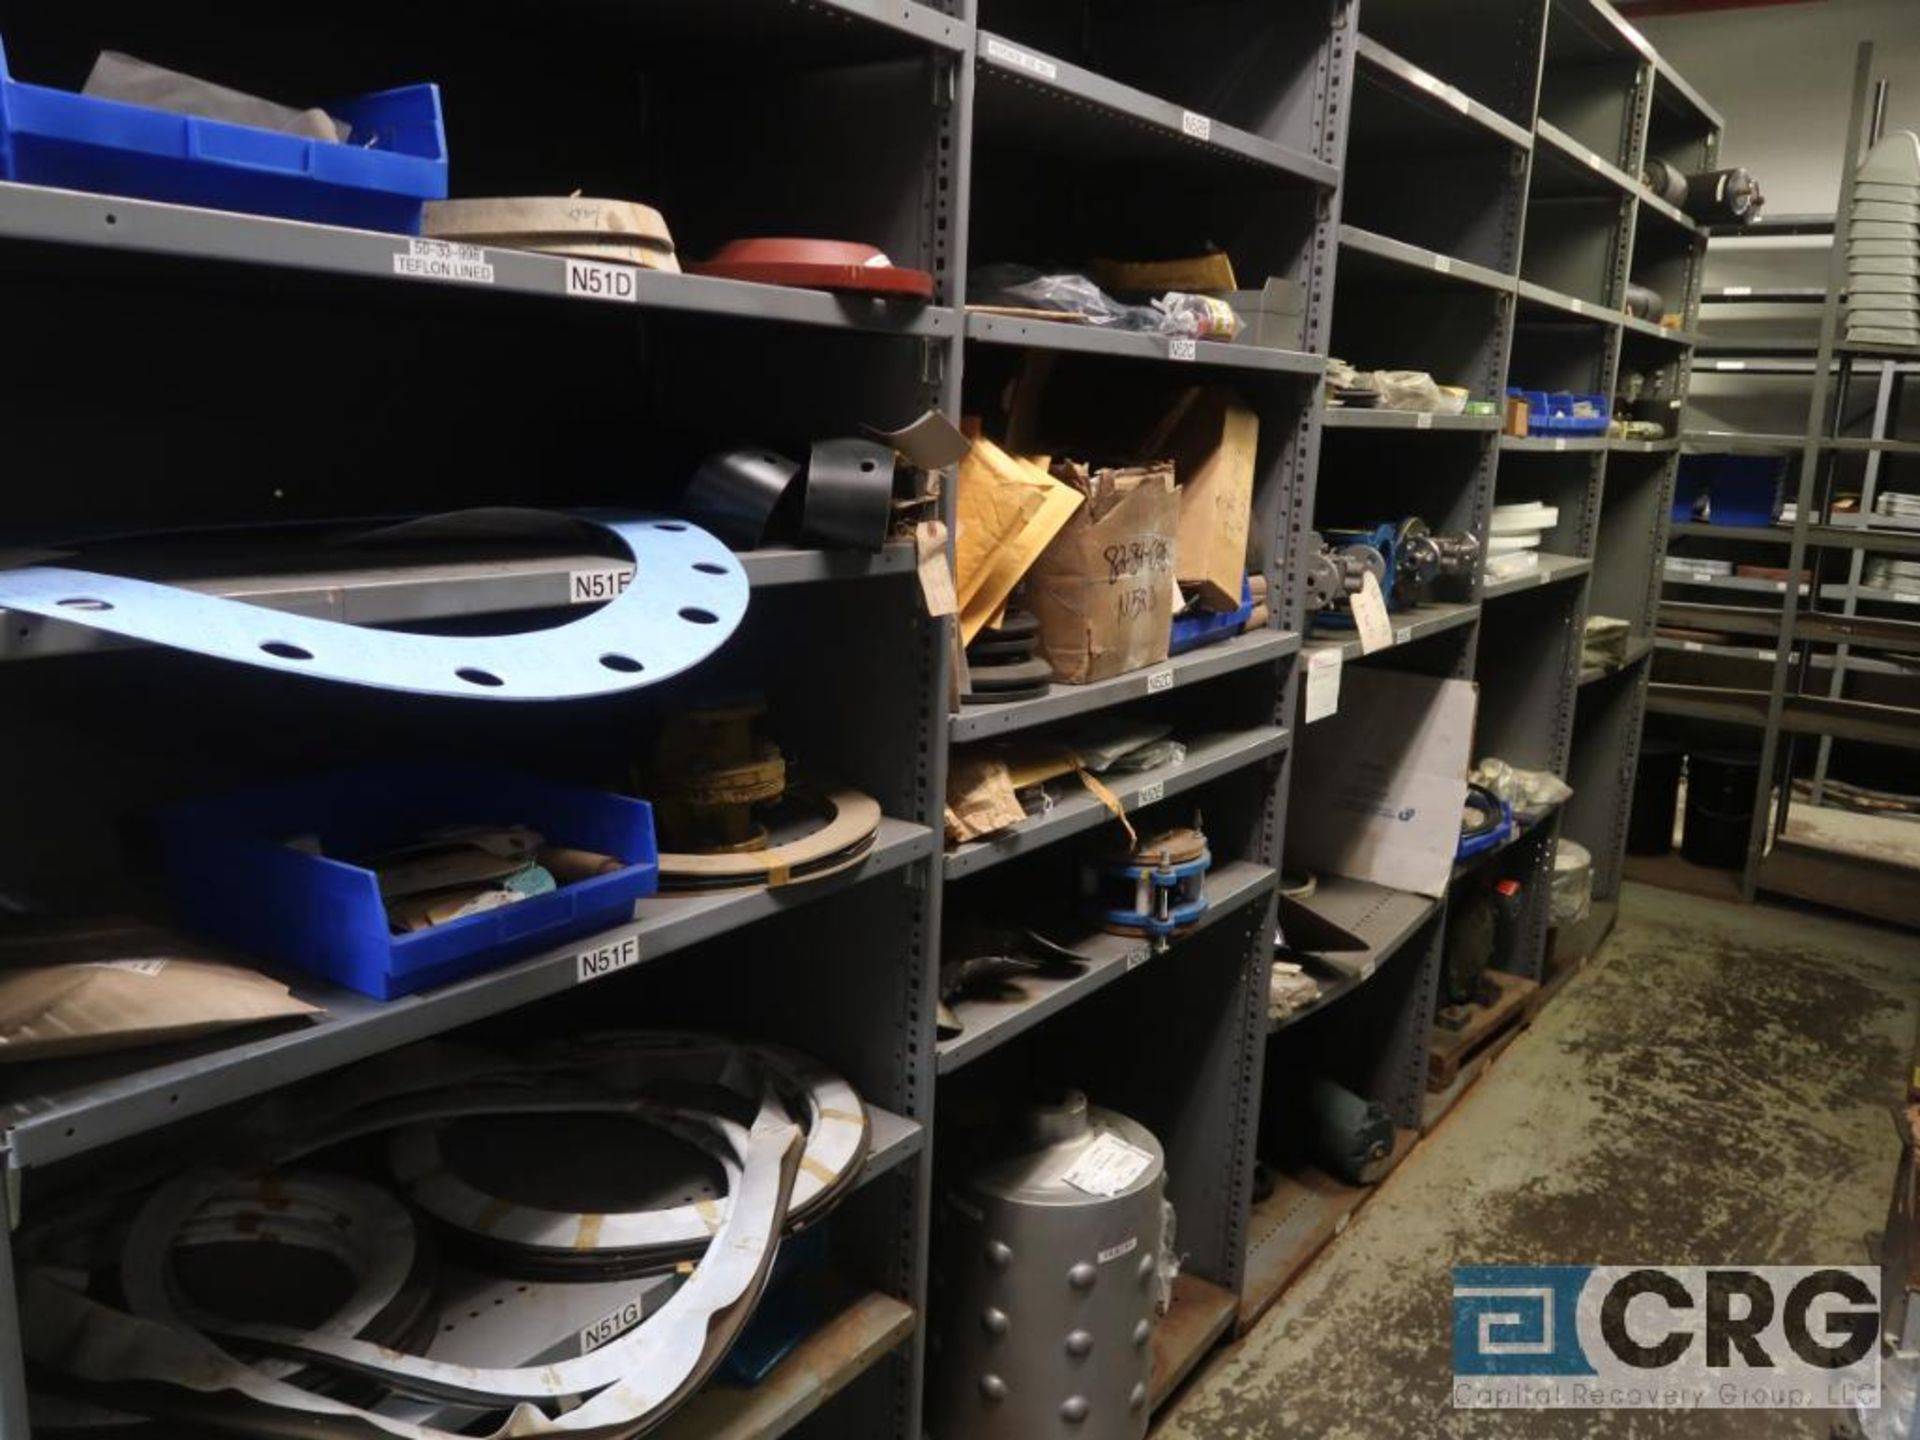 Lot of (35) sections with assorted parts including gaskets, fittings, shaft pins, gears, and - Image 8 of 17